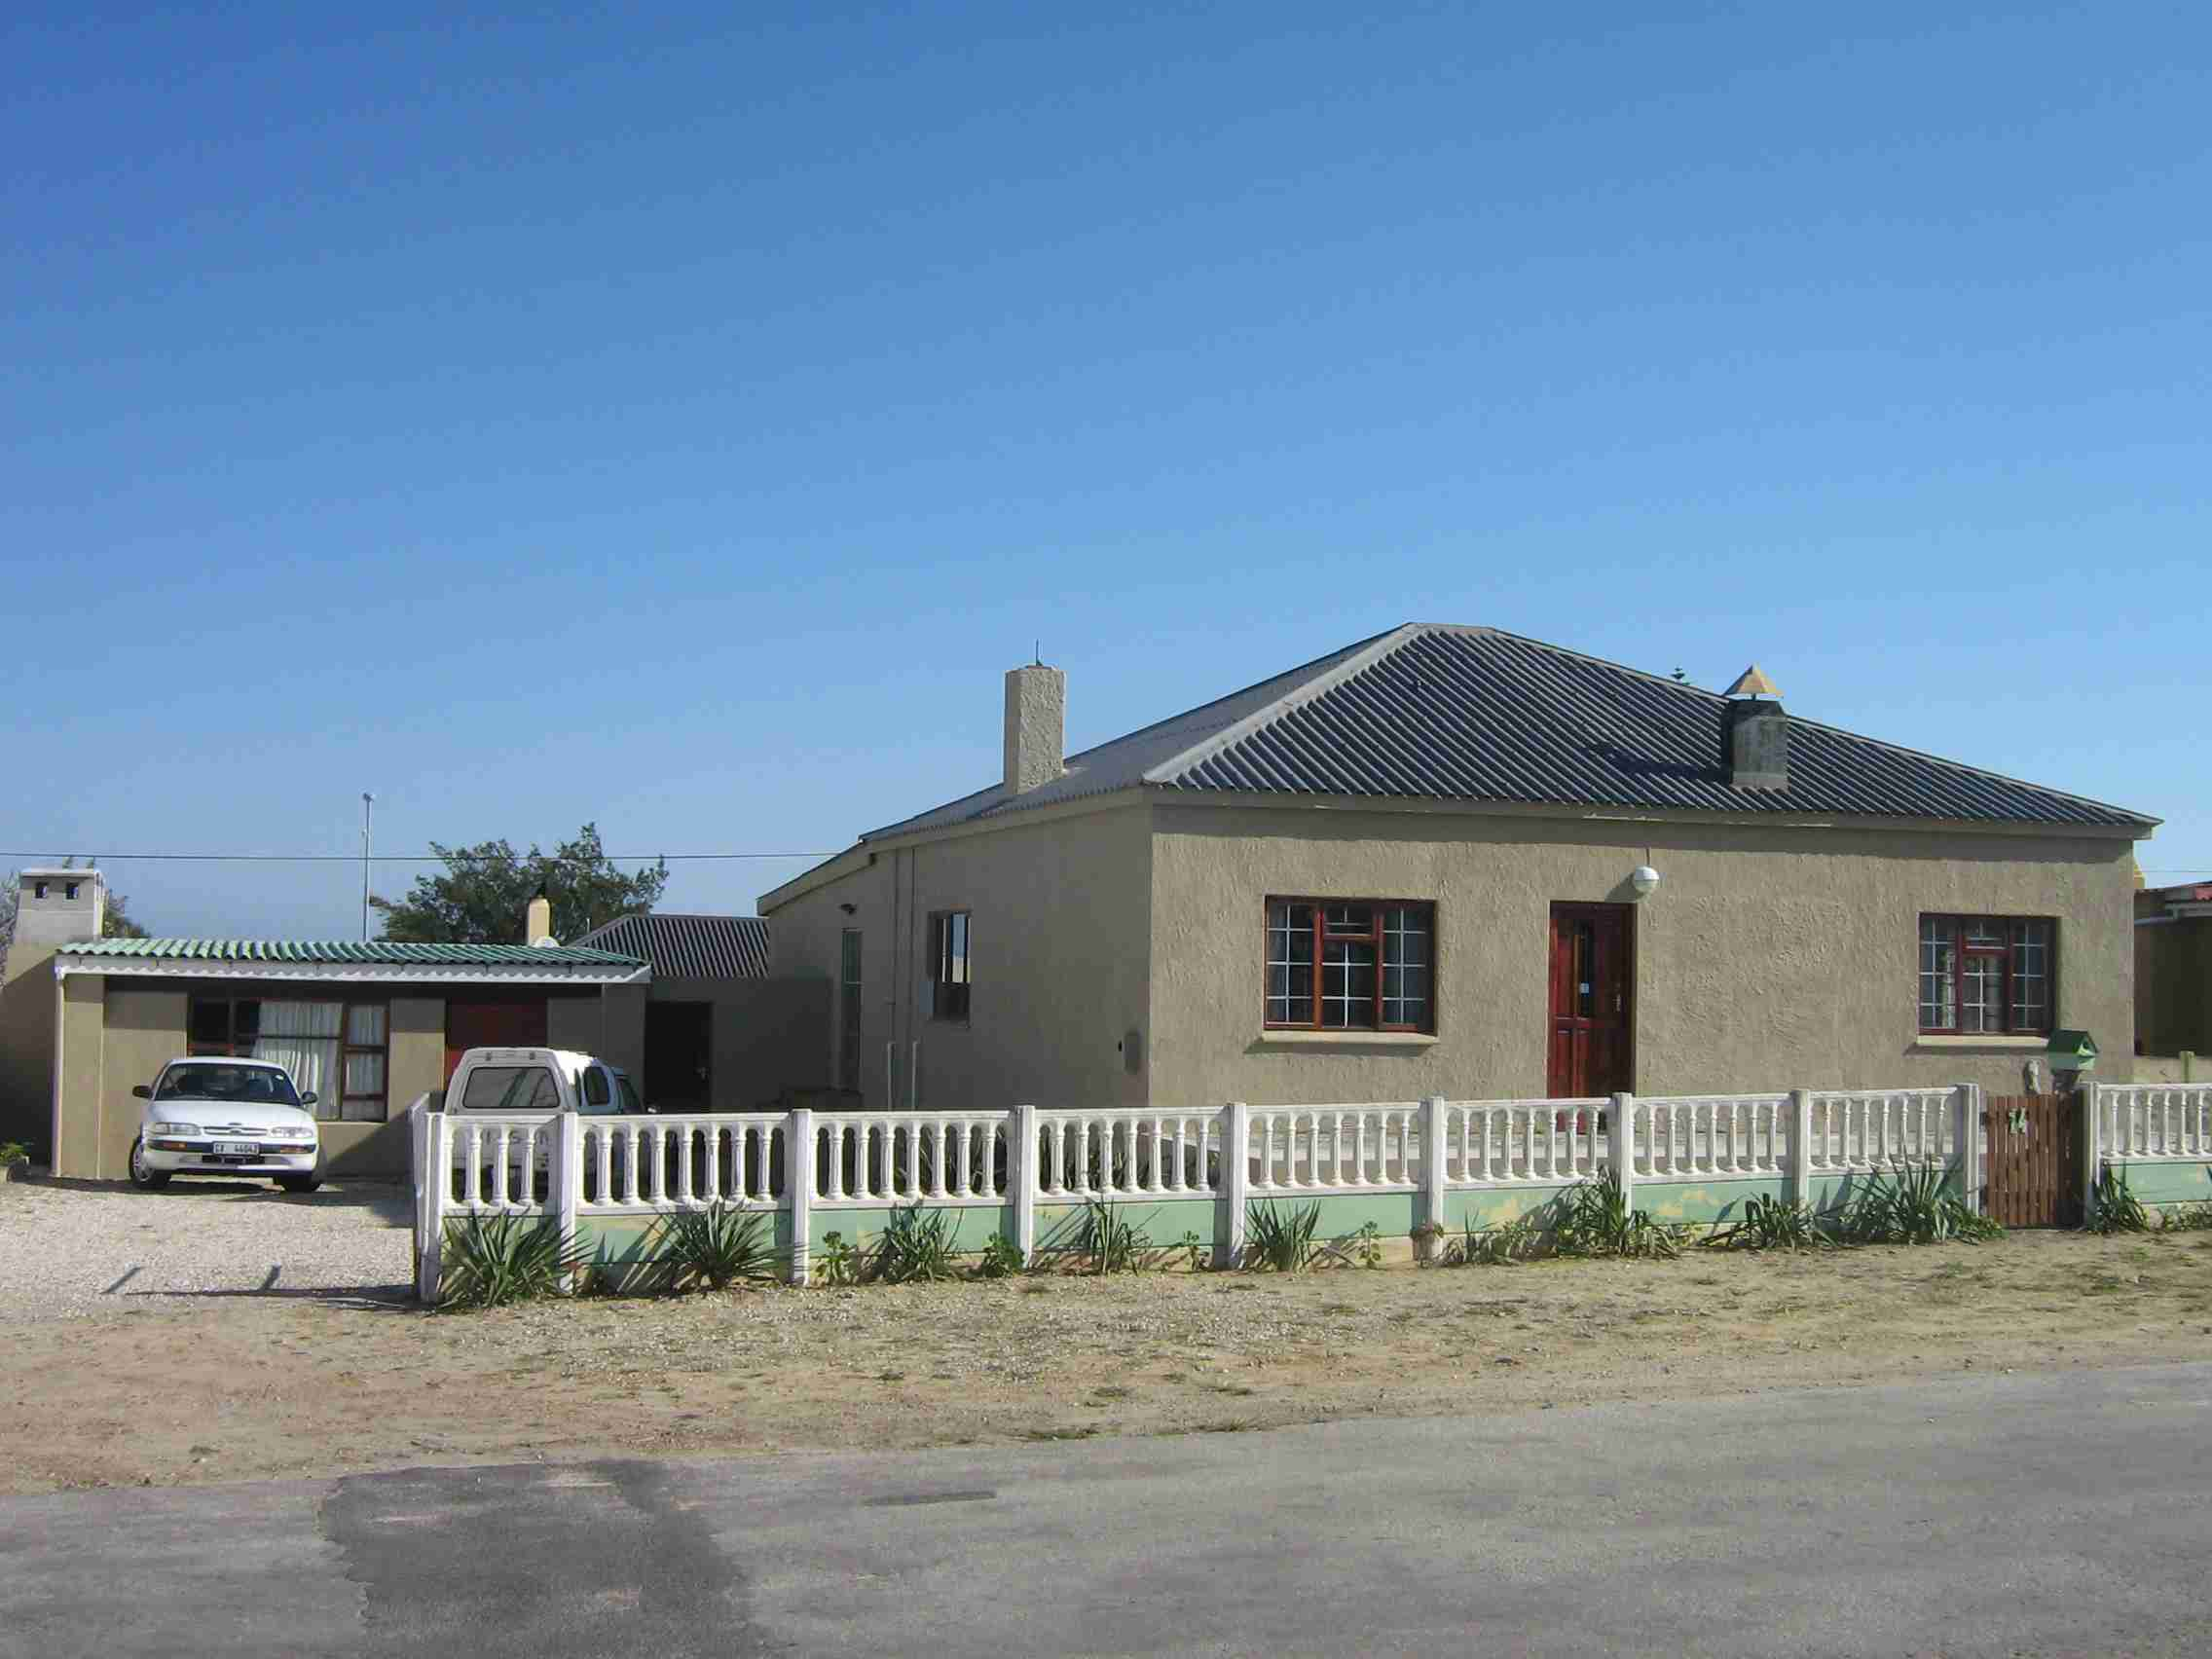 3 BEDROOMS 2 BATHROOMS RENOVATED HOME FOR SALE IN GANSBAAI